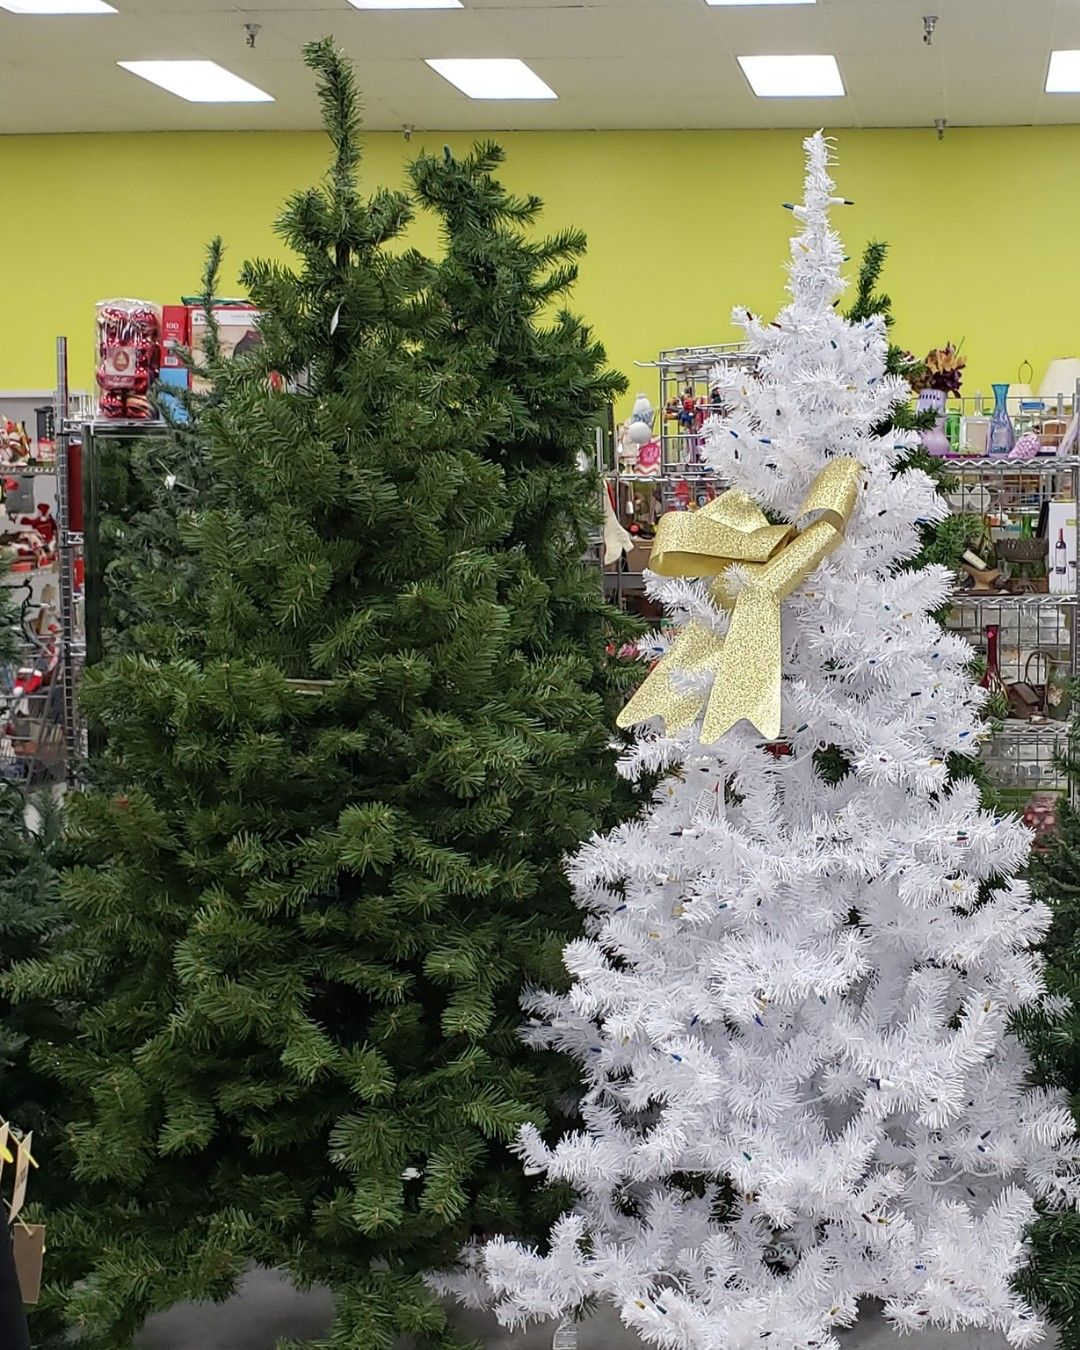 Looking for a tree for the holidays? Goodwill has a BIG